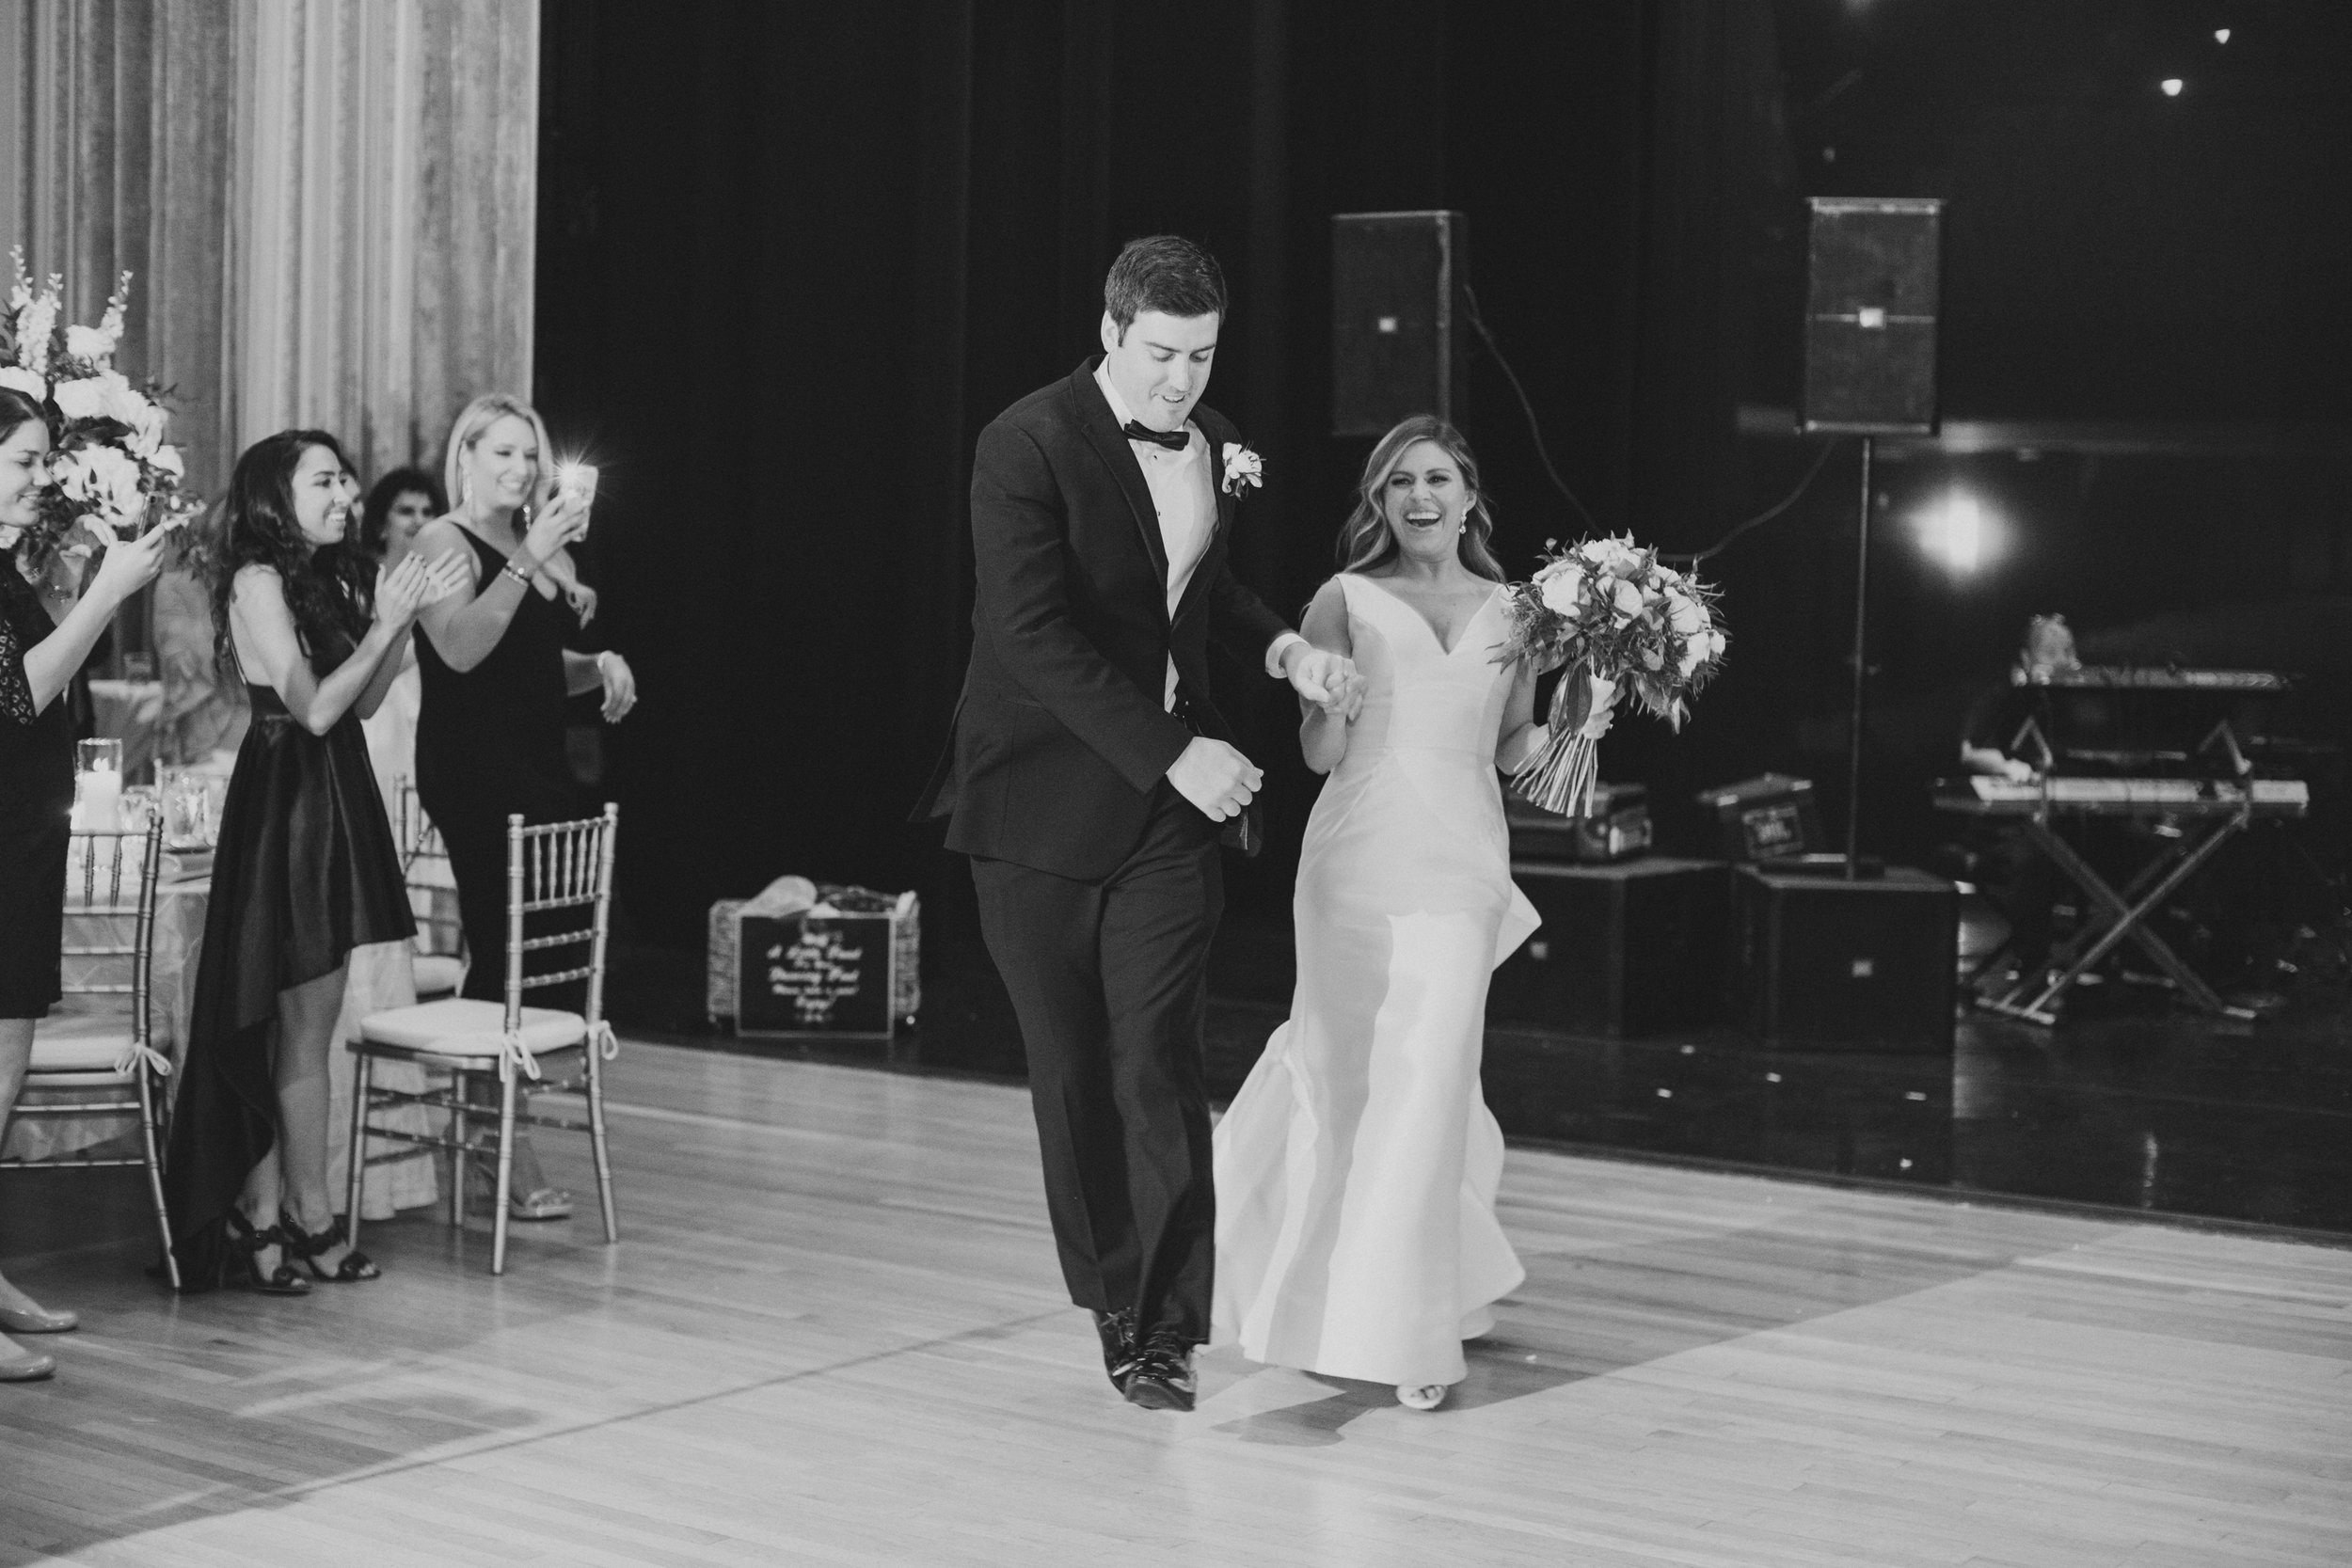 Spring Scranton Cultural Center Wedding Photos_JDP-200.jpg